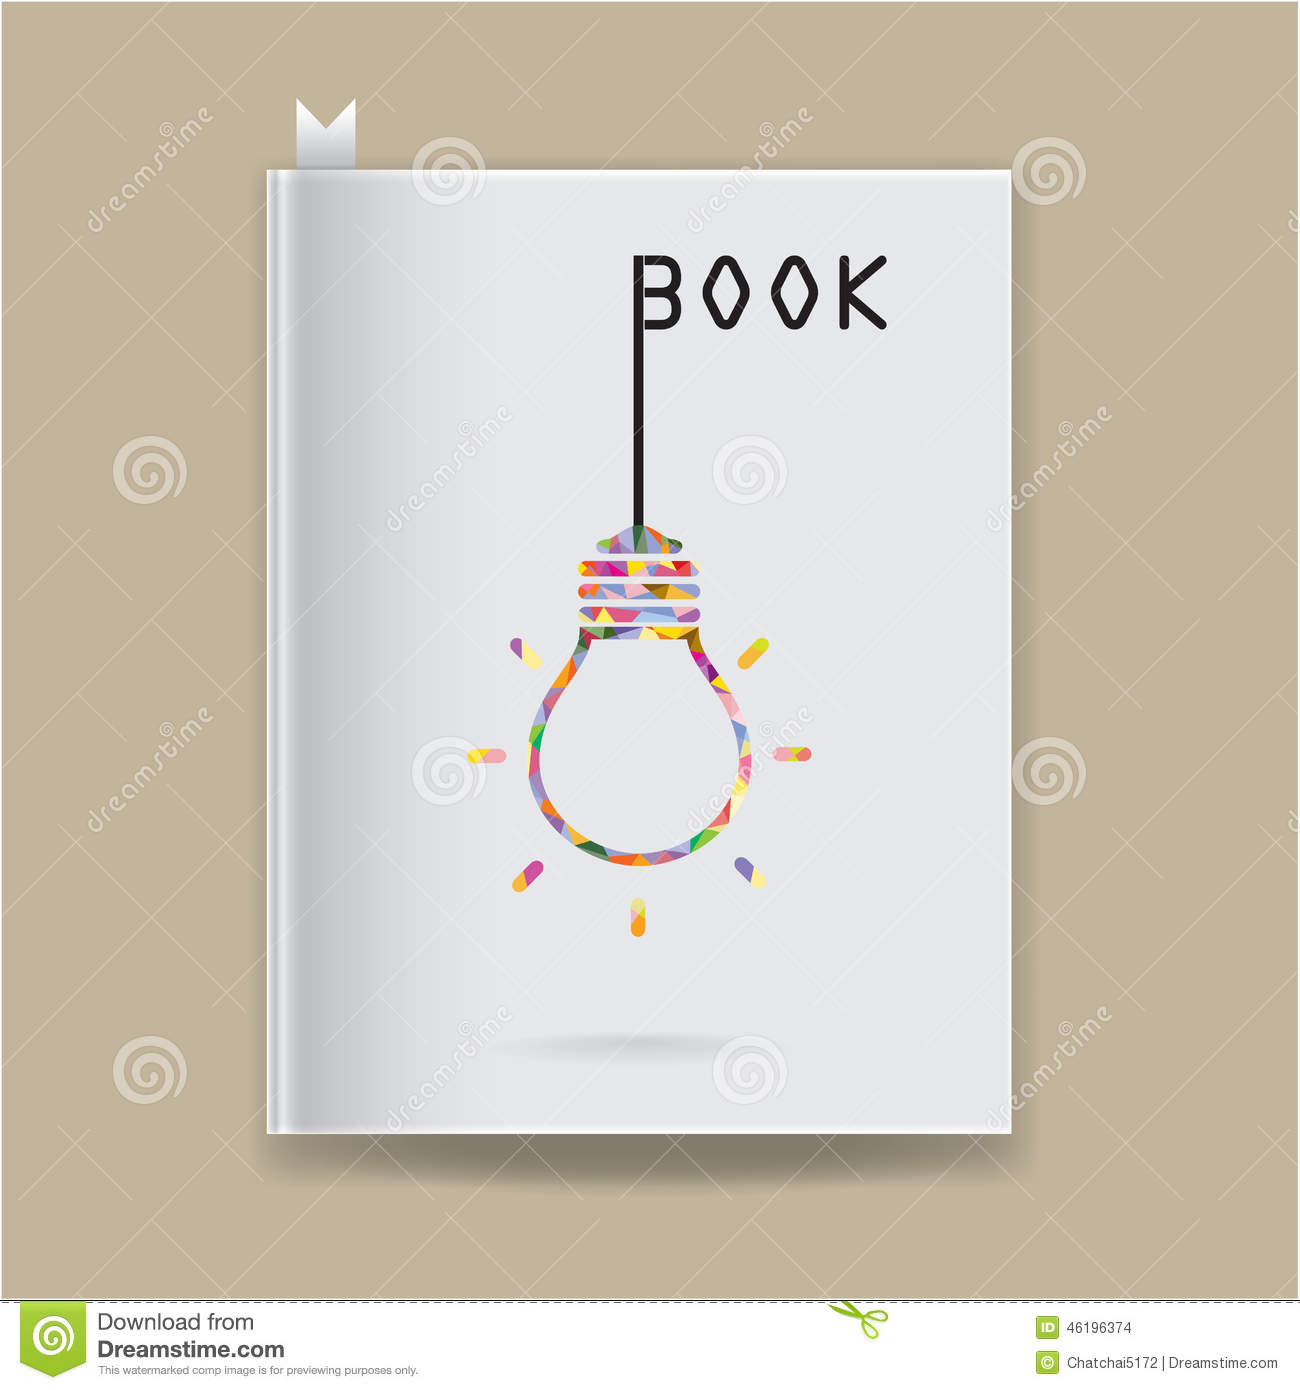 Book Cover Illustration Fee ~ Creative light bulb idea concept on blank book cover stock